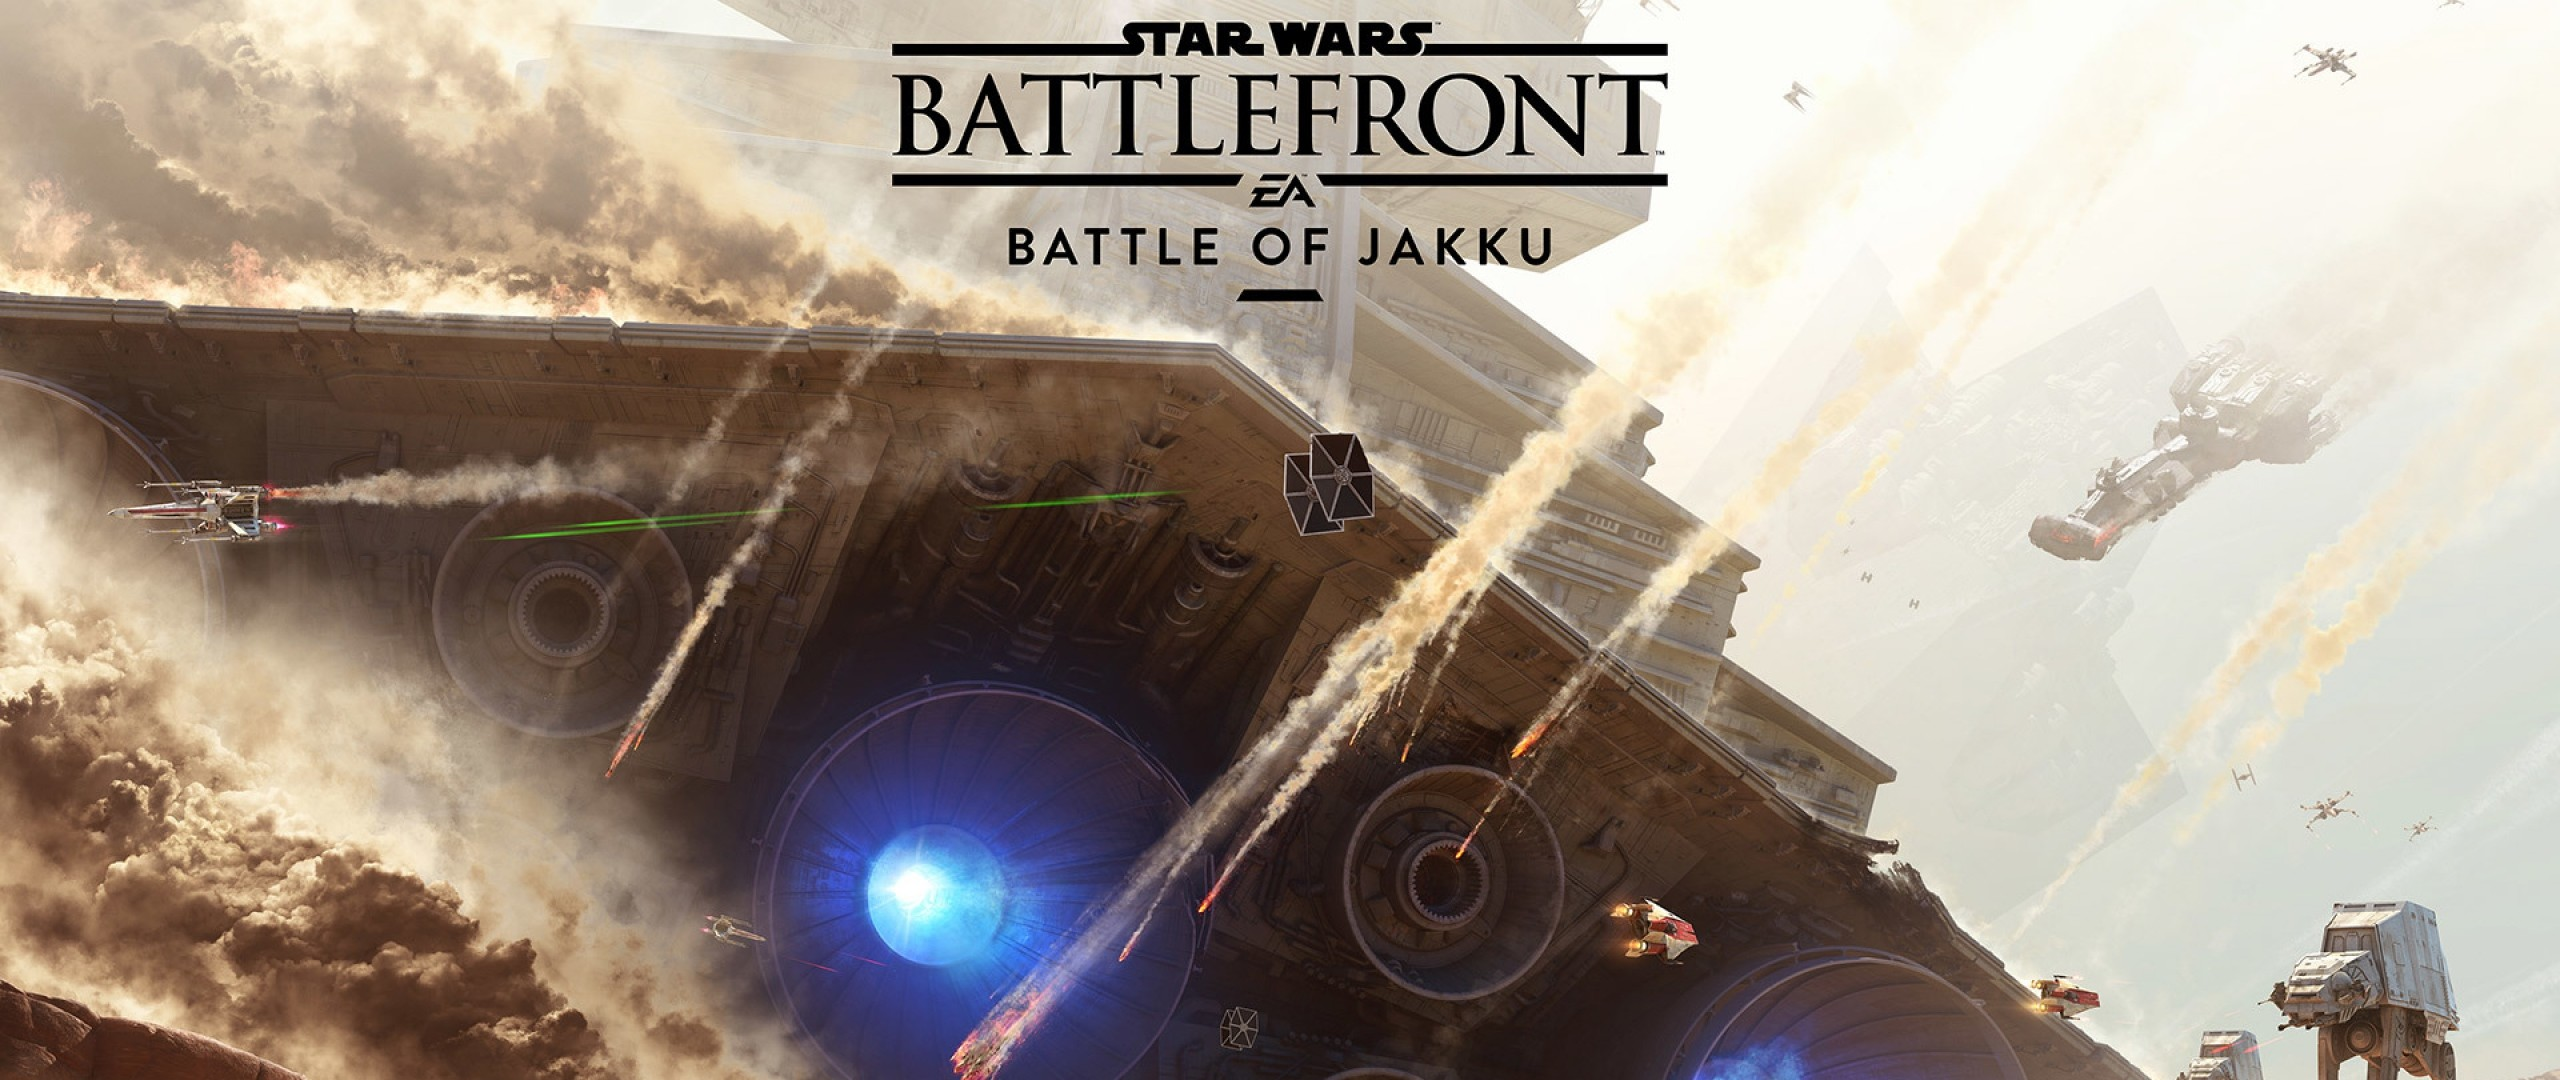 2560x1080 Preview wallpaper star wars, battlefront, battle of jakku